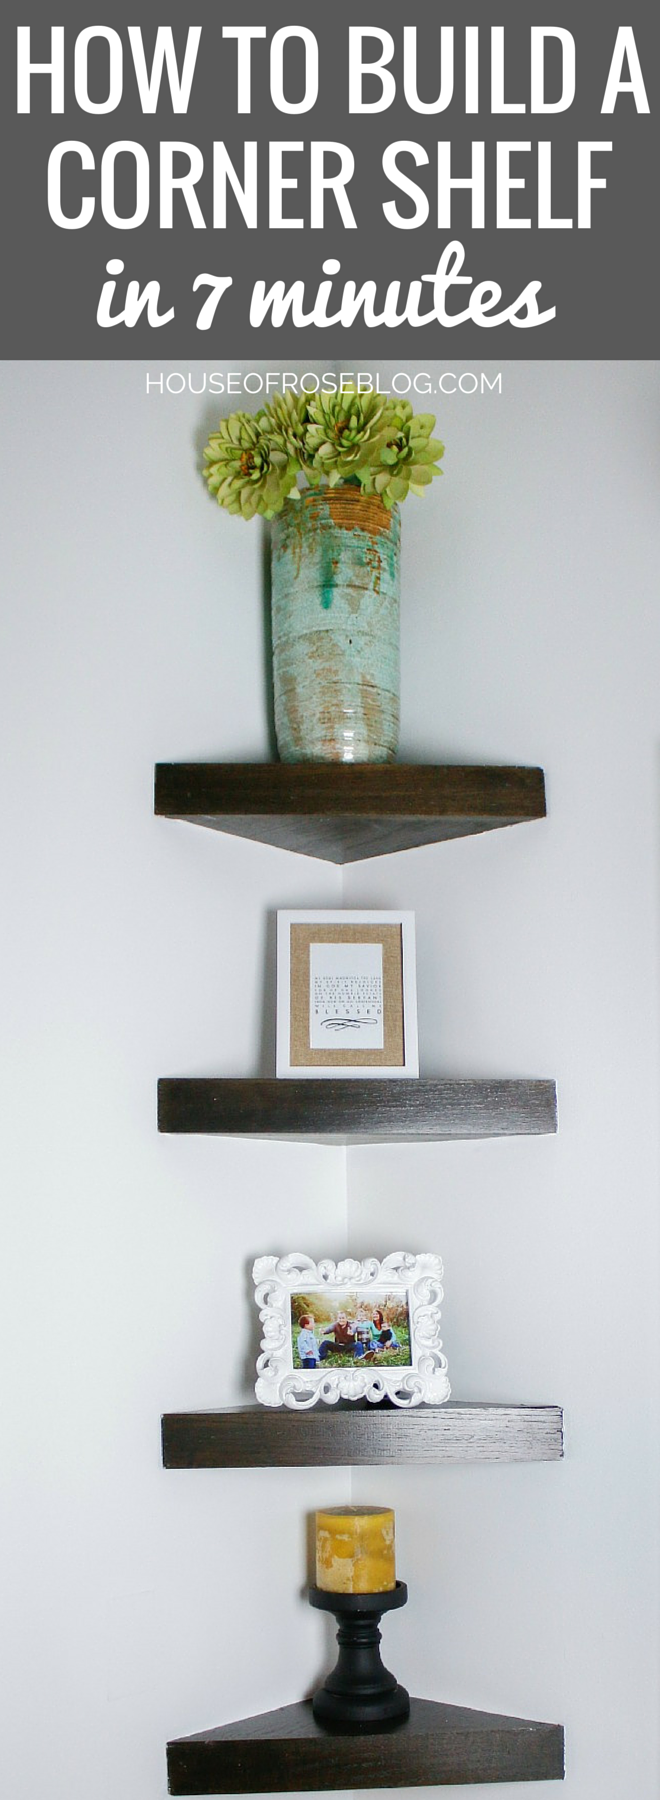 1 DIY Corner Shelves via simphome